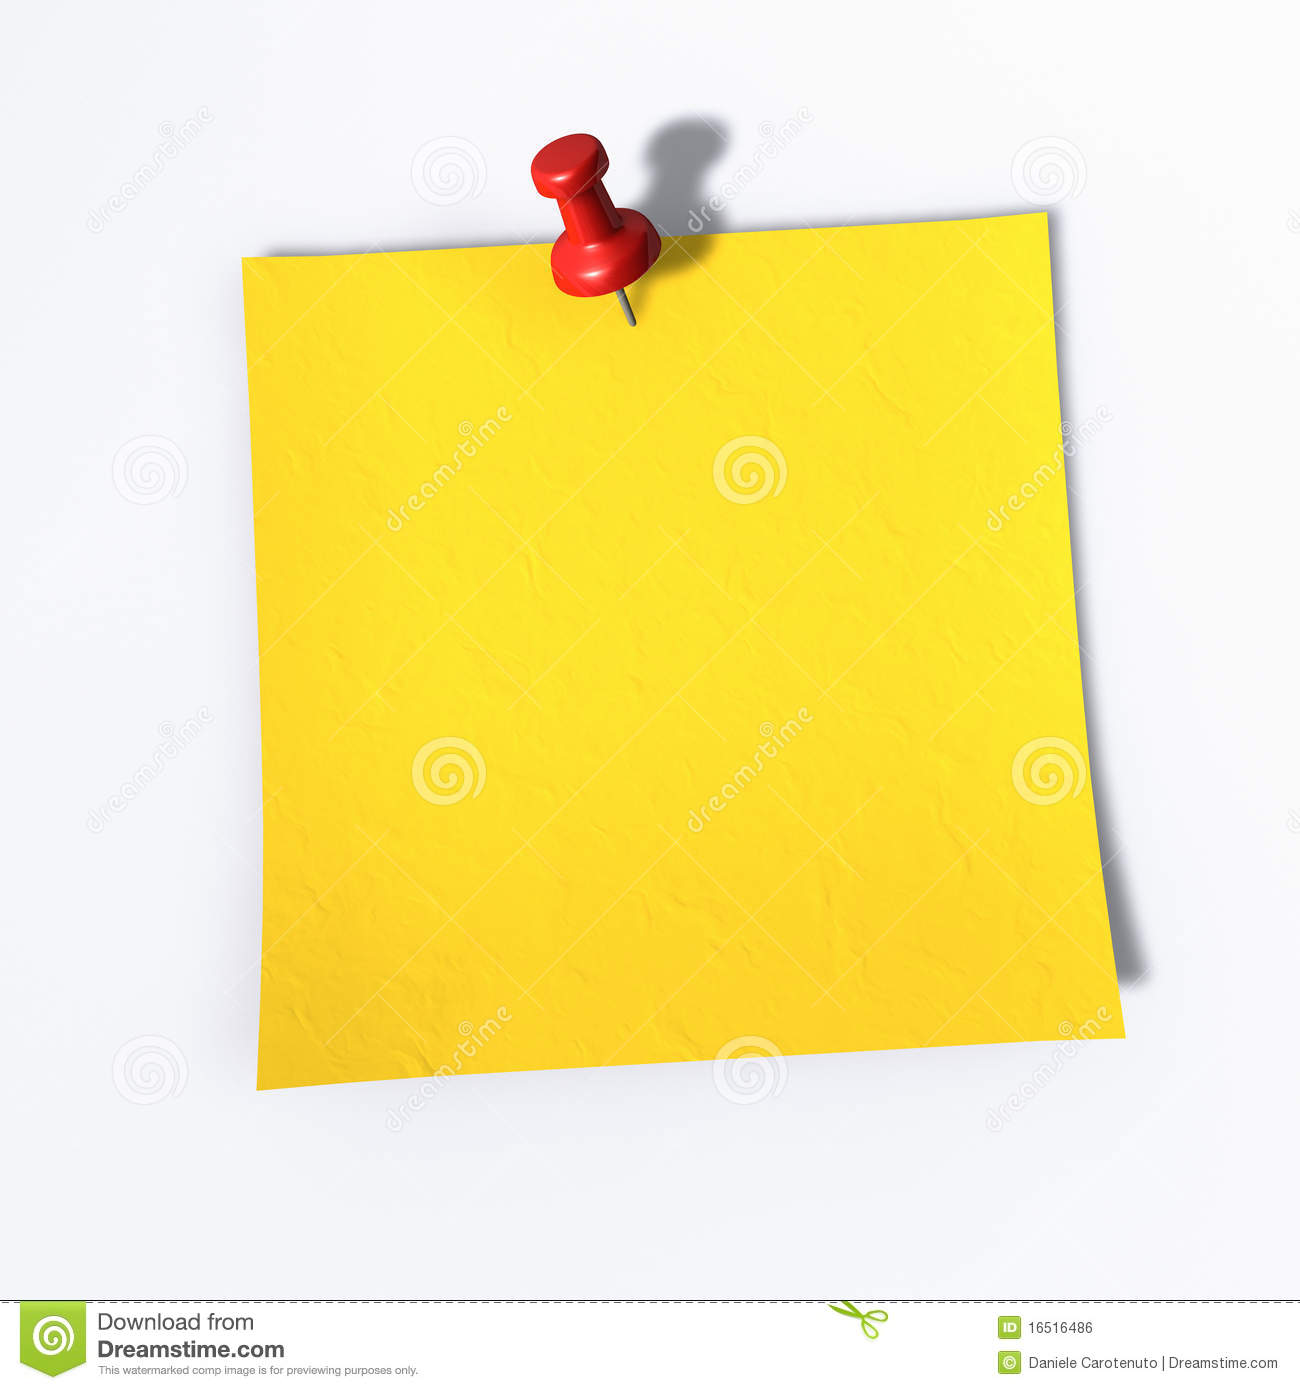 post it a red tack on a memo note royalty stock image post it a red tack on a memo note